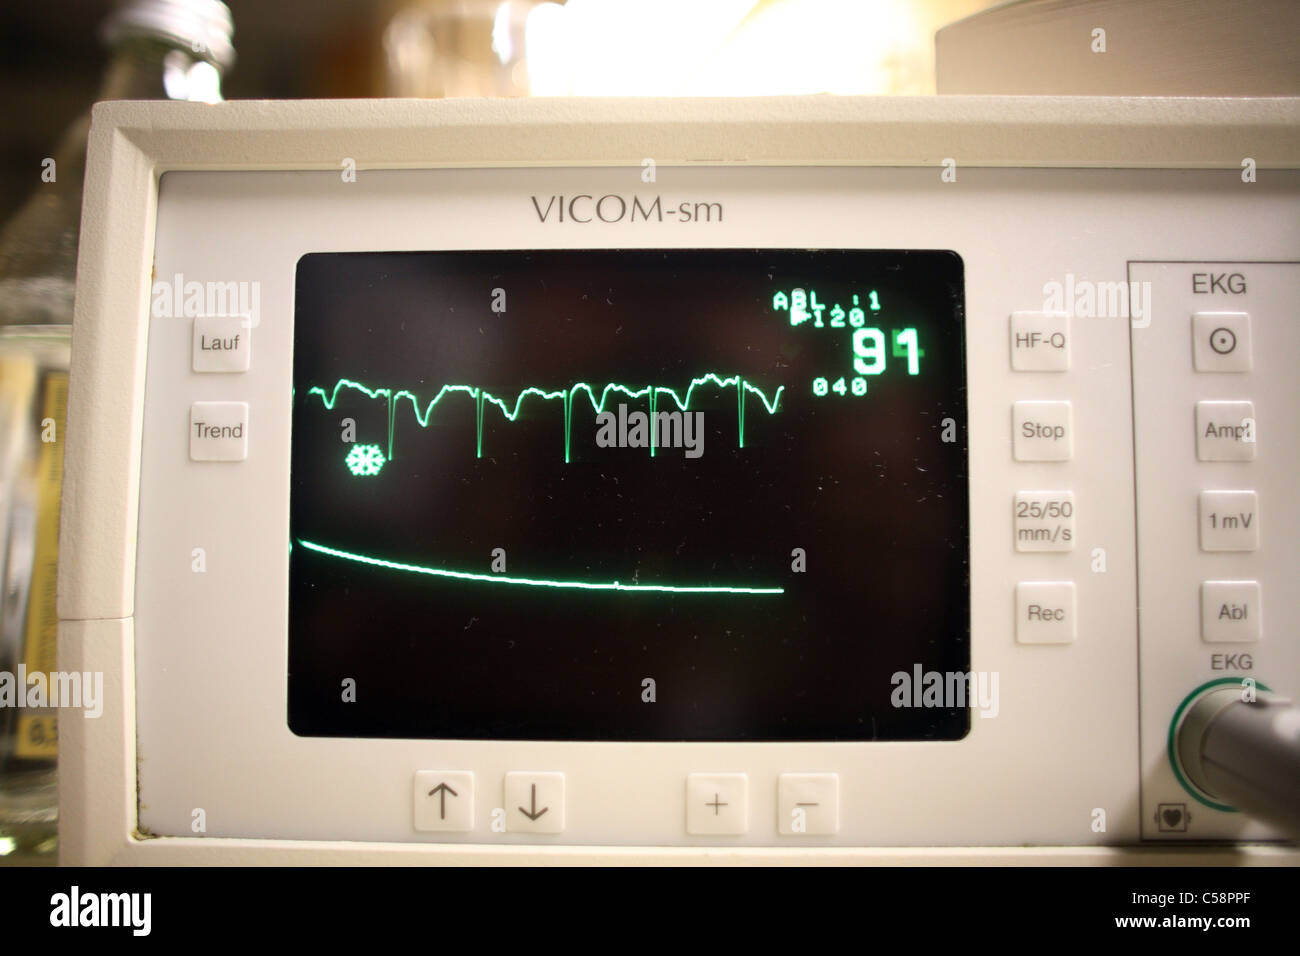 Monitor for monitoring vital signs - Stock Image